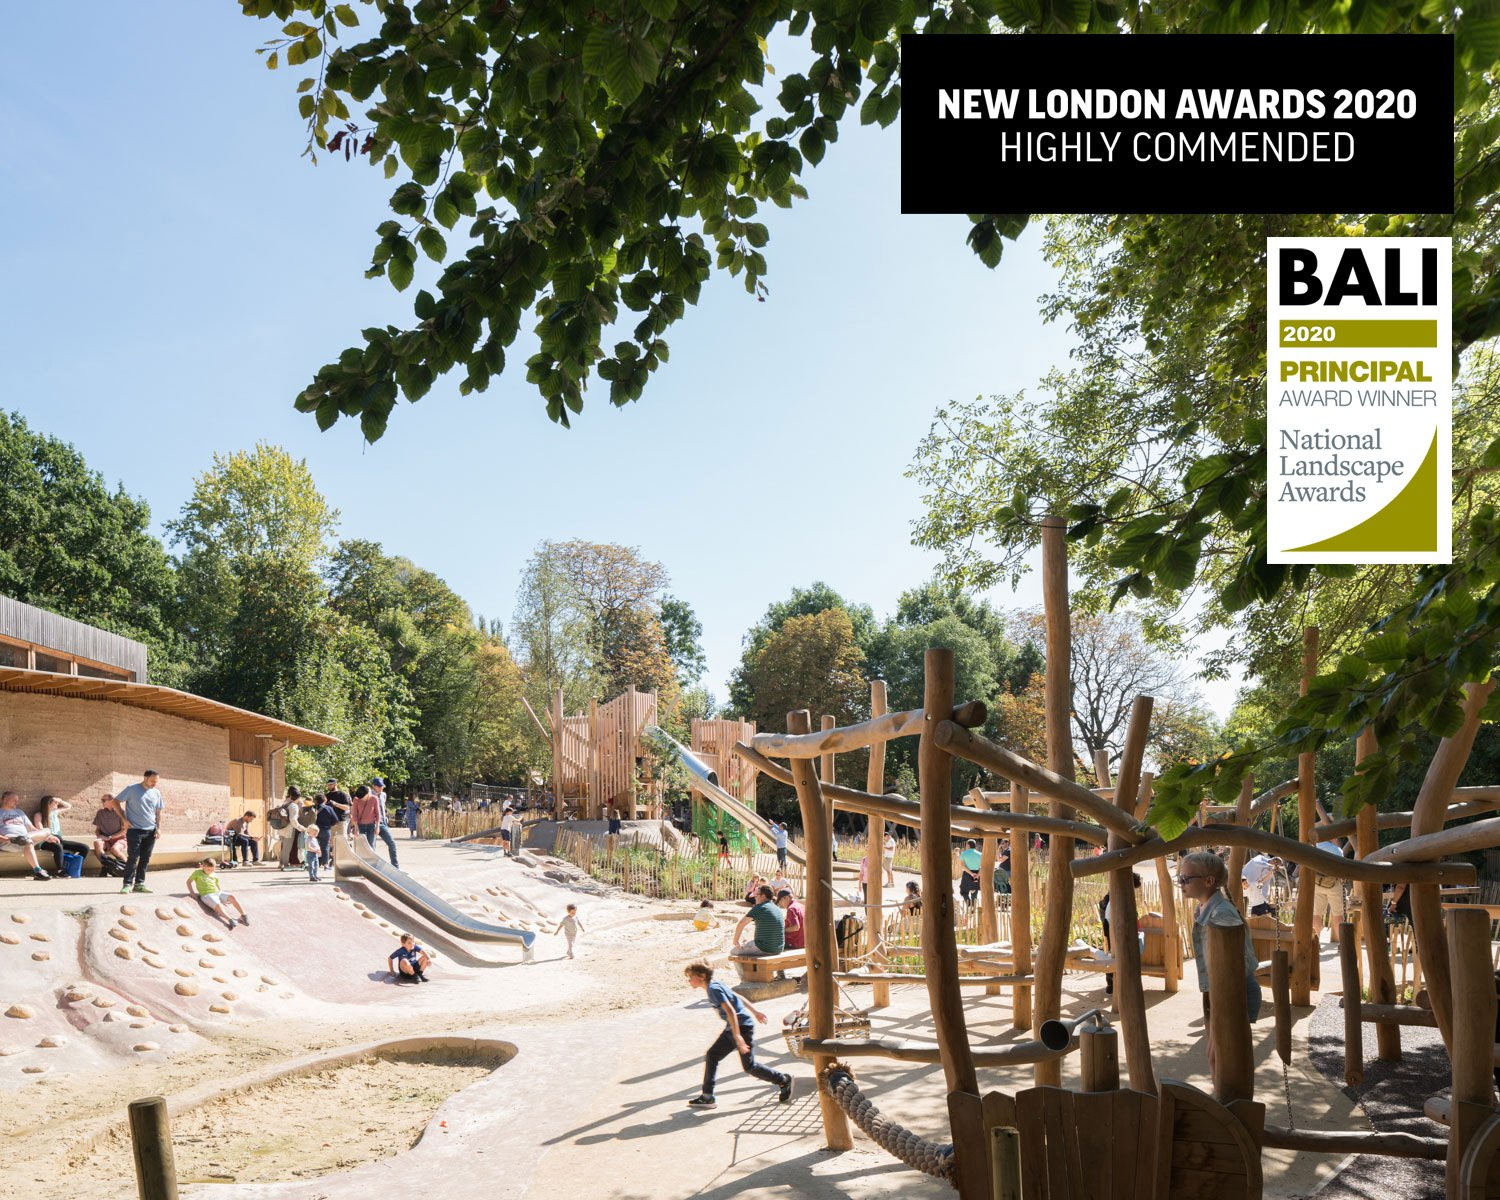 Holland Park Playground Bali Award